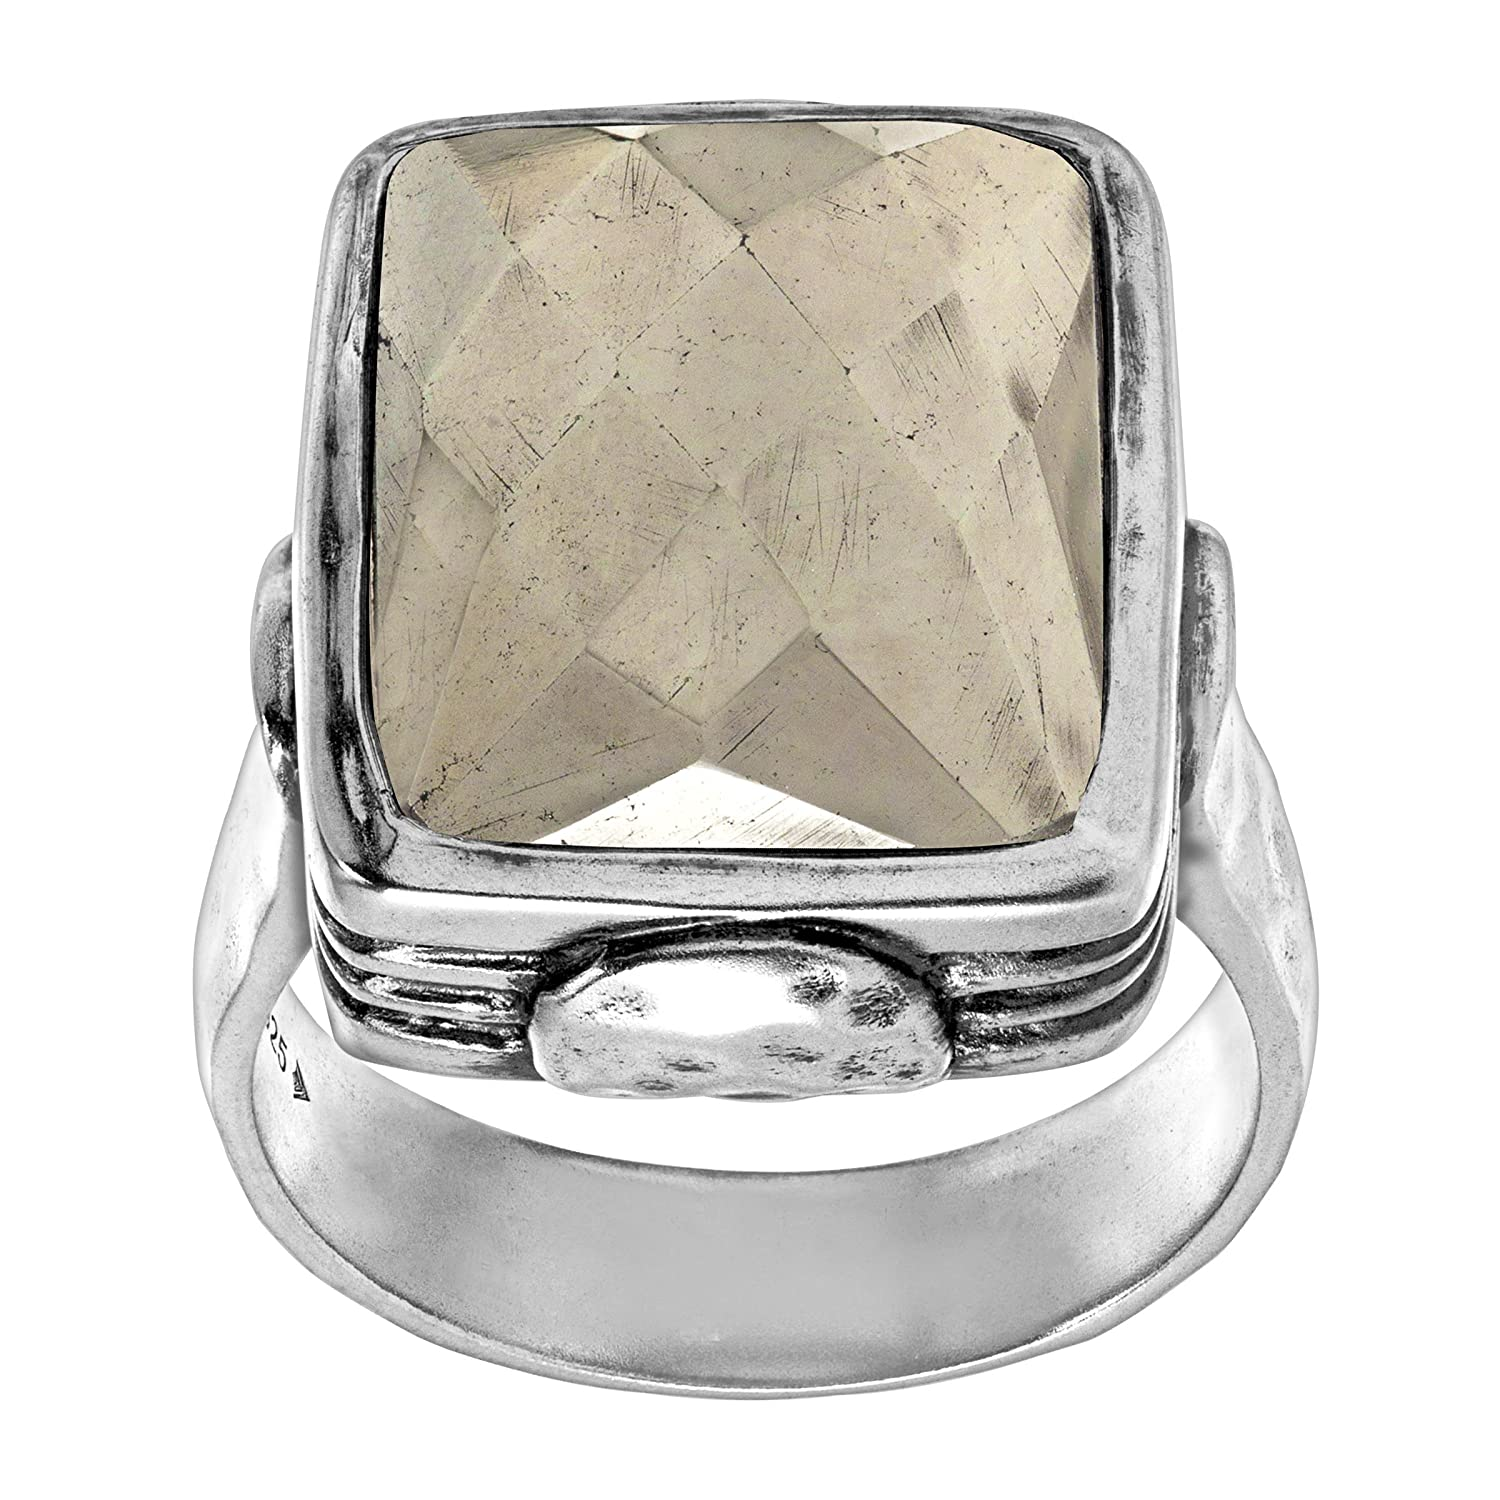 Silpada 'Amarillo' Pyrite and Sterling Silver Ring Richline Group R3479